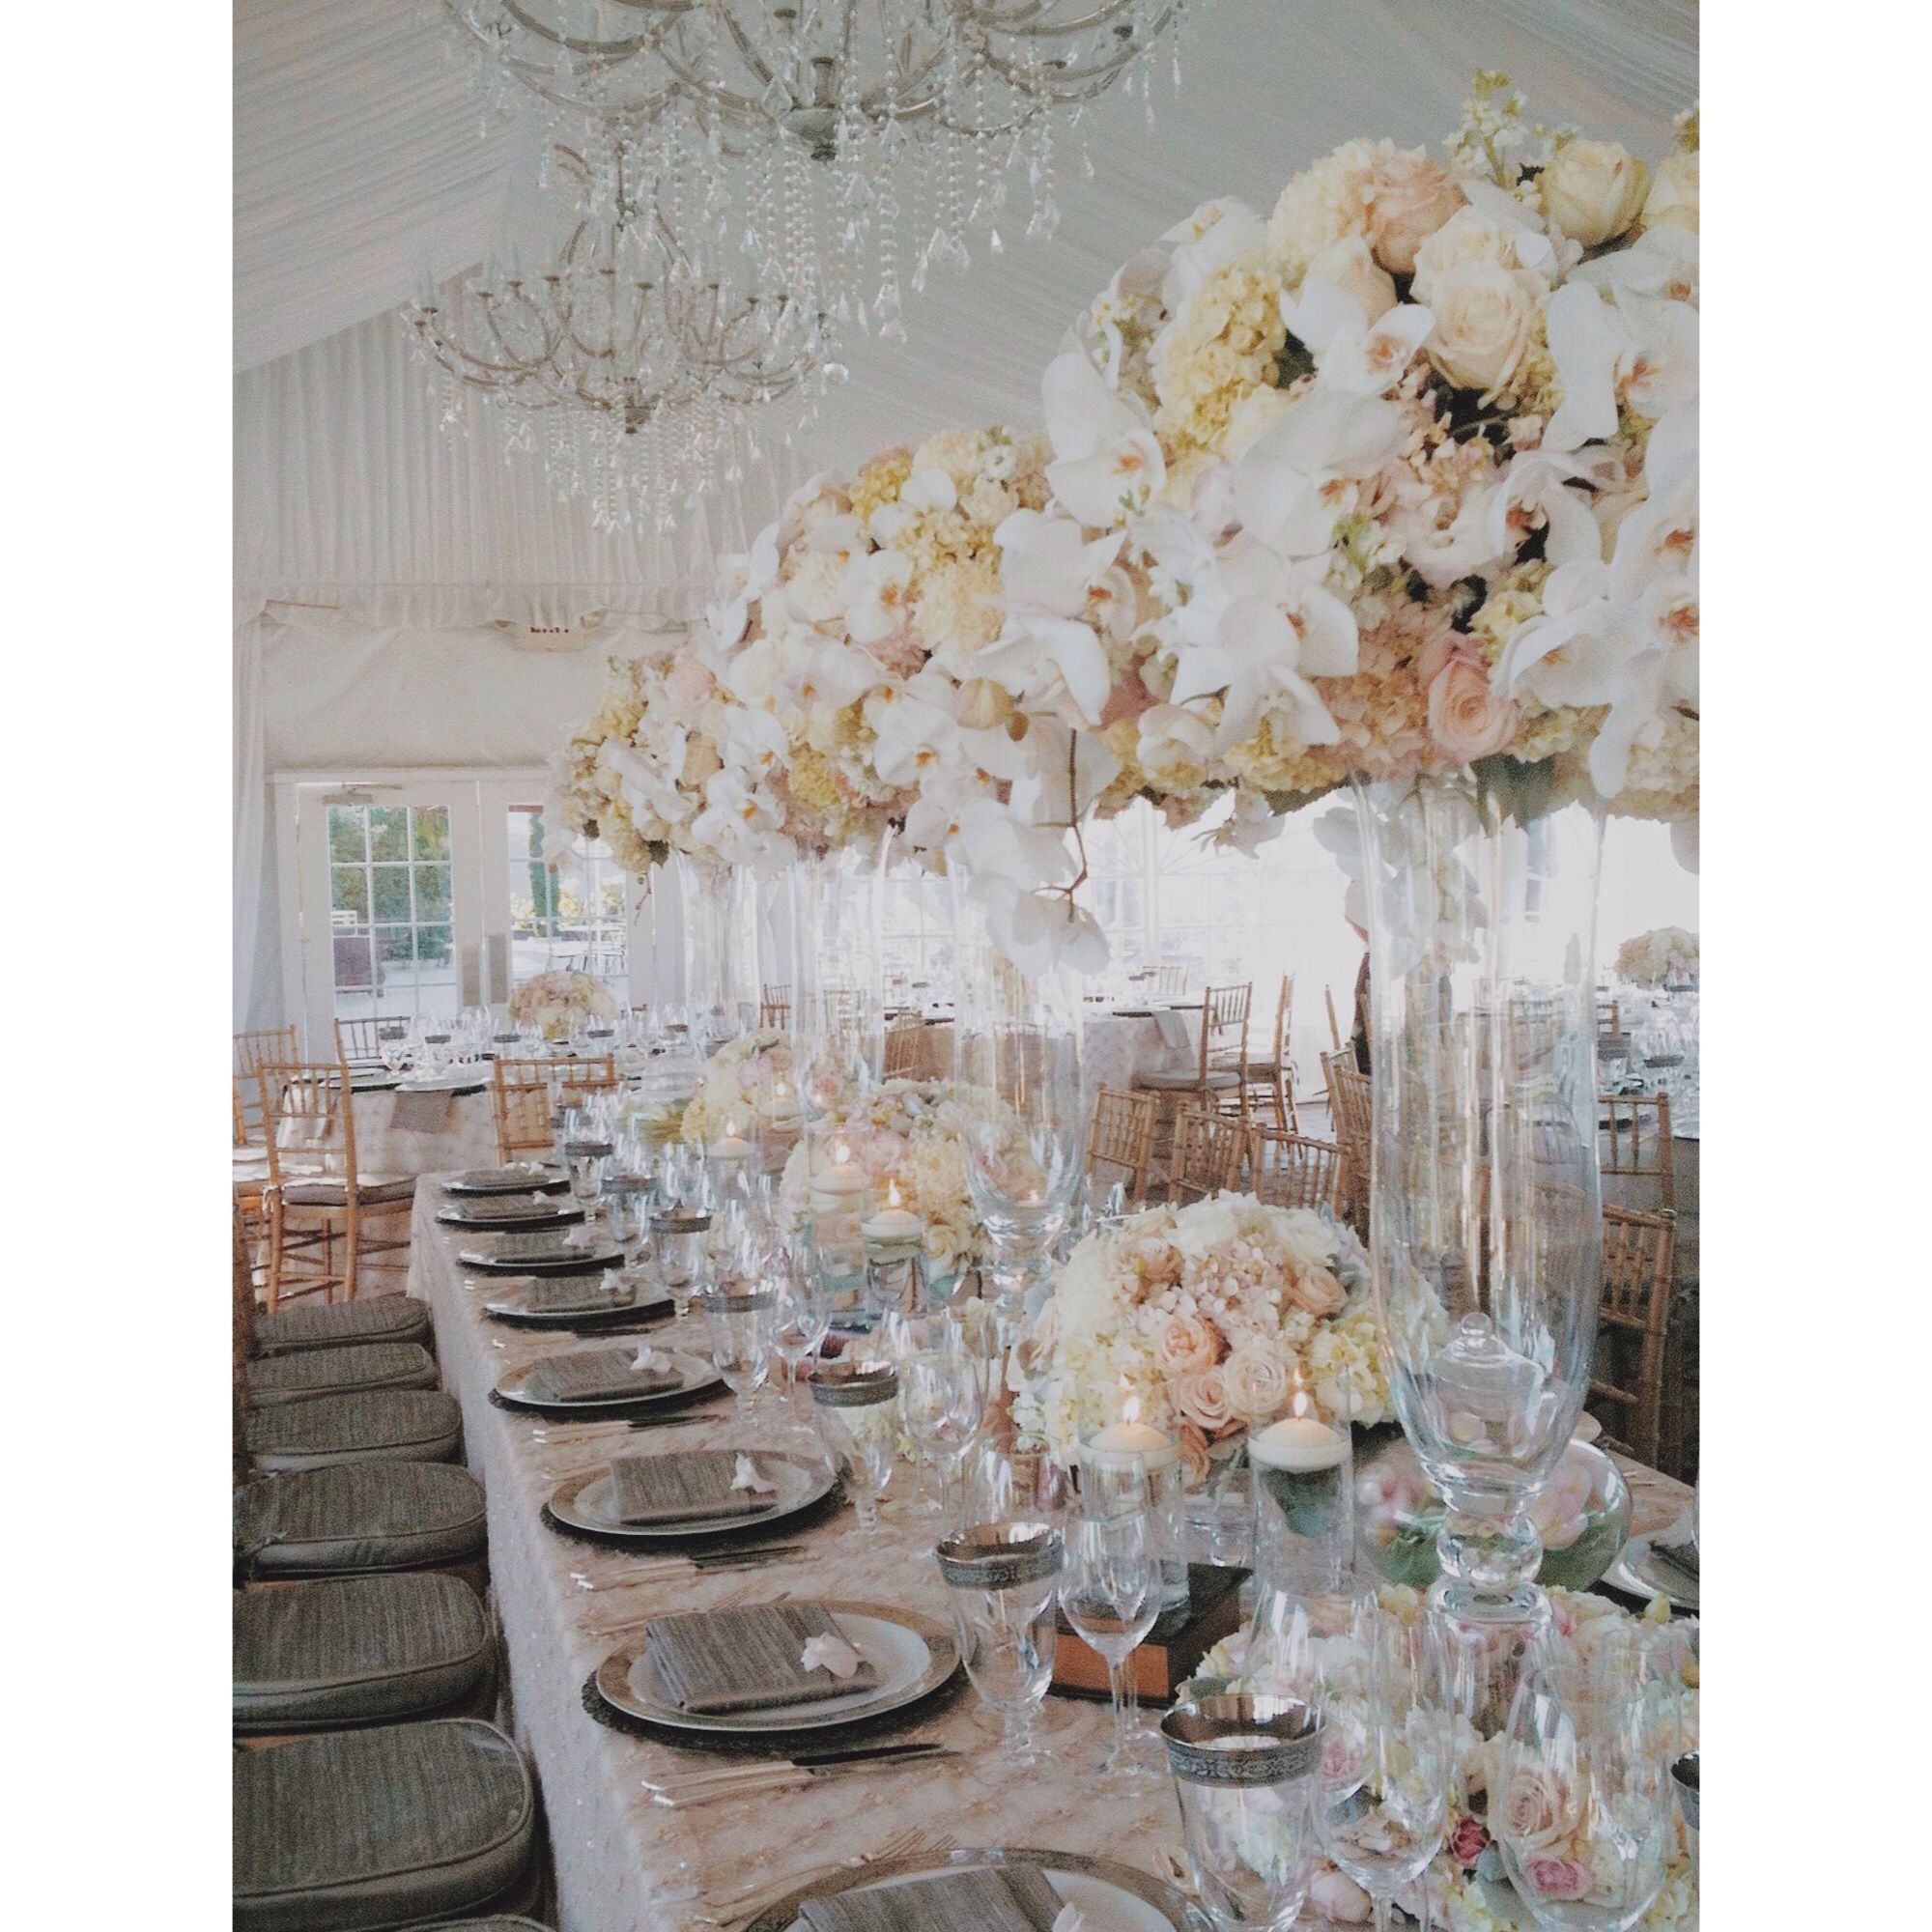 White Luxury Wedding Decor With Wonderful And Beautiful: Viansa Romantic Glamour Luxury Wedding White Pink Peach